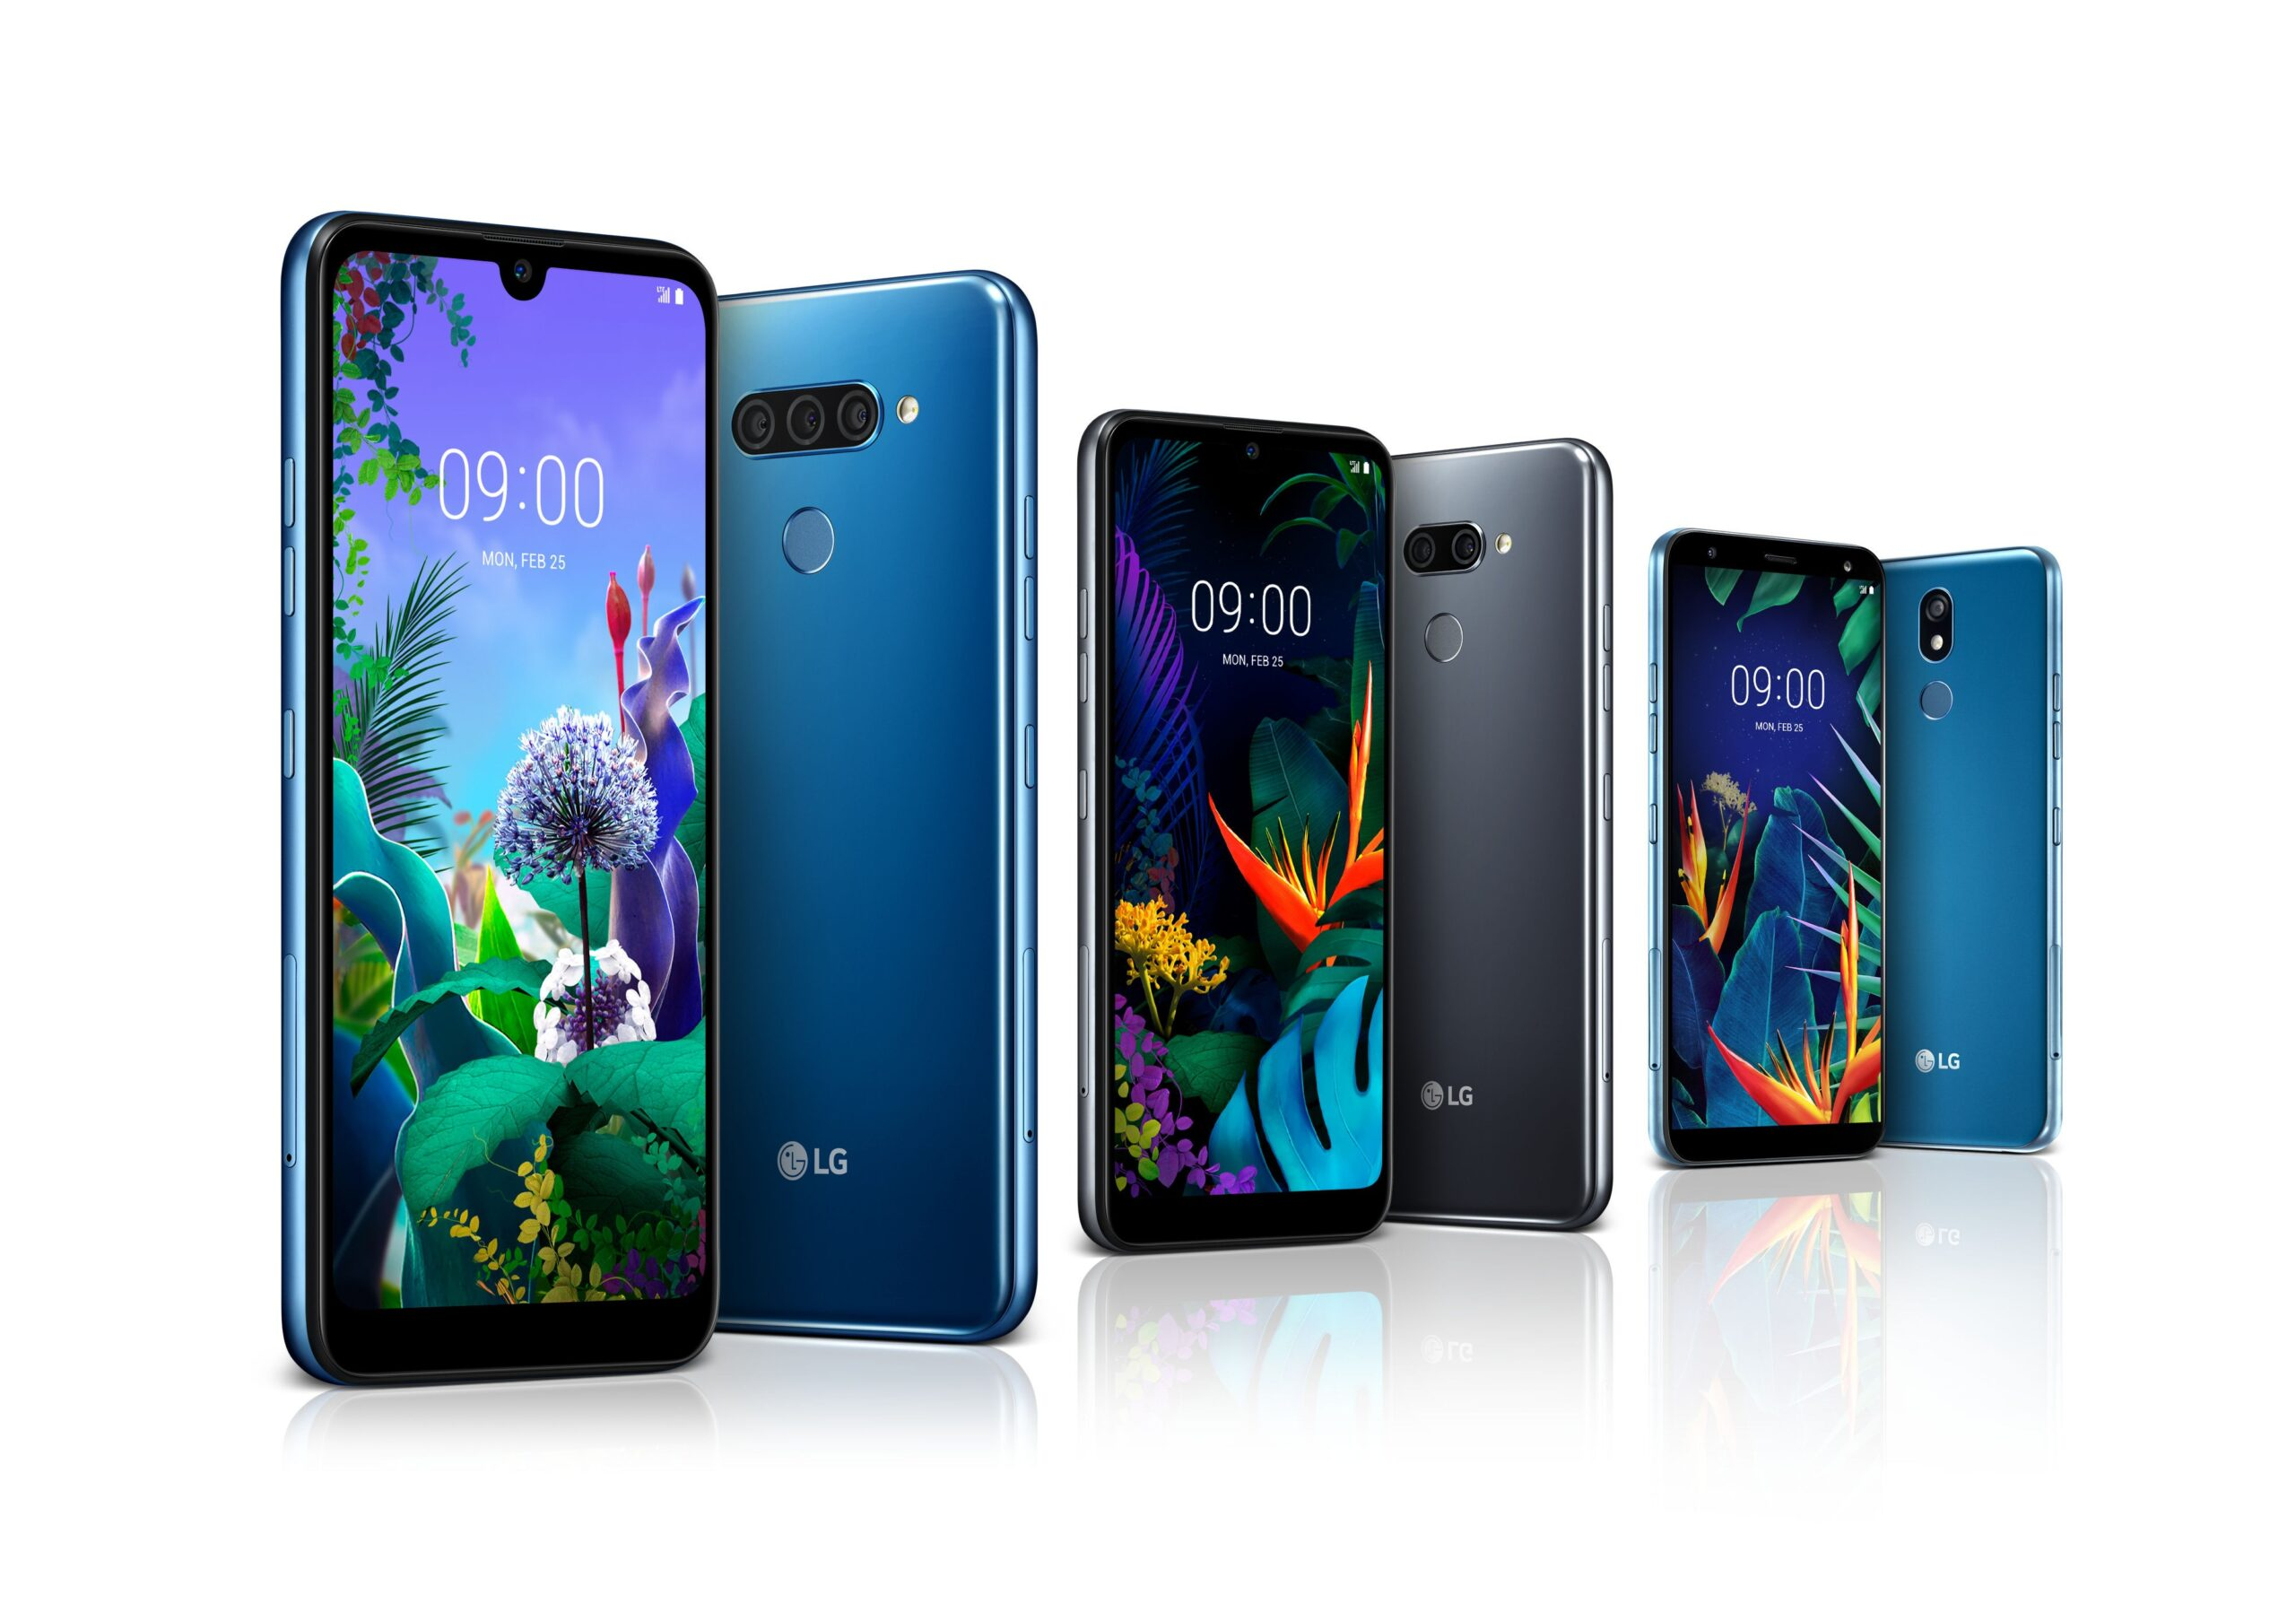 The front and rear view of the LG Q60 in New Moroccan Blue, the LG K50 in New Platinum Gray and LG K40 in New Moroccan Blue